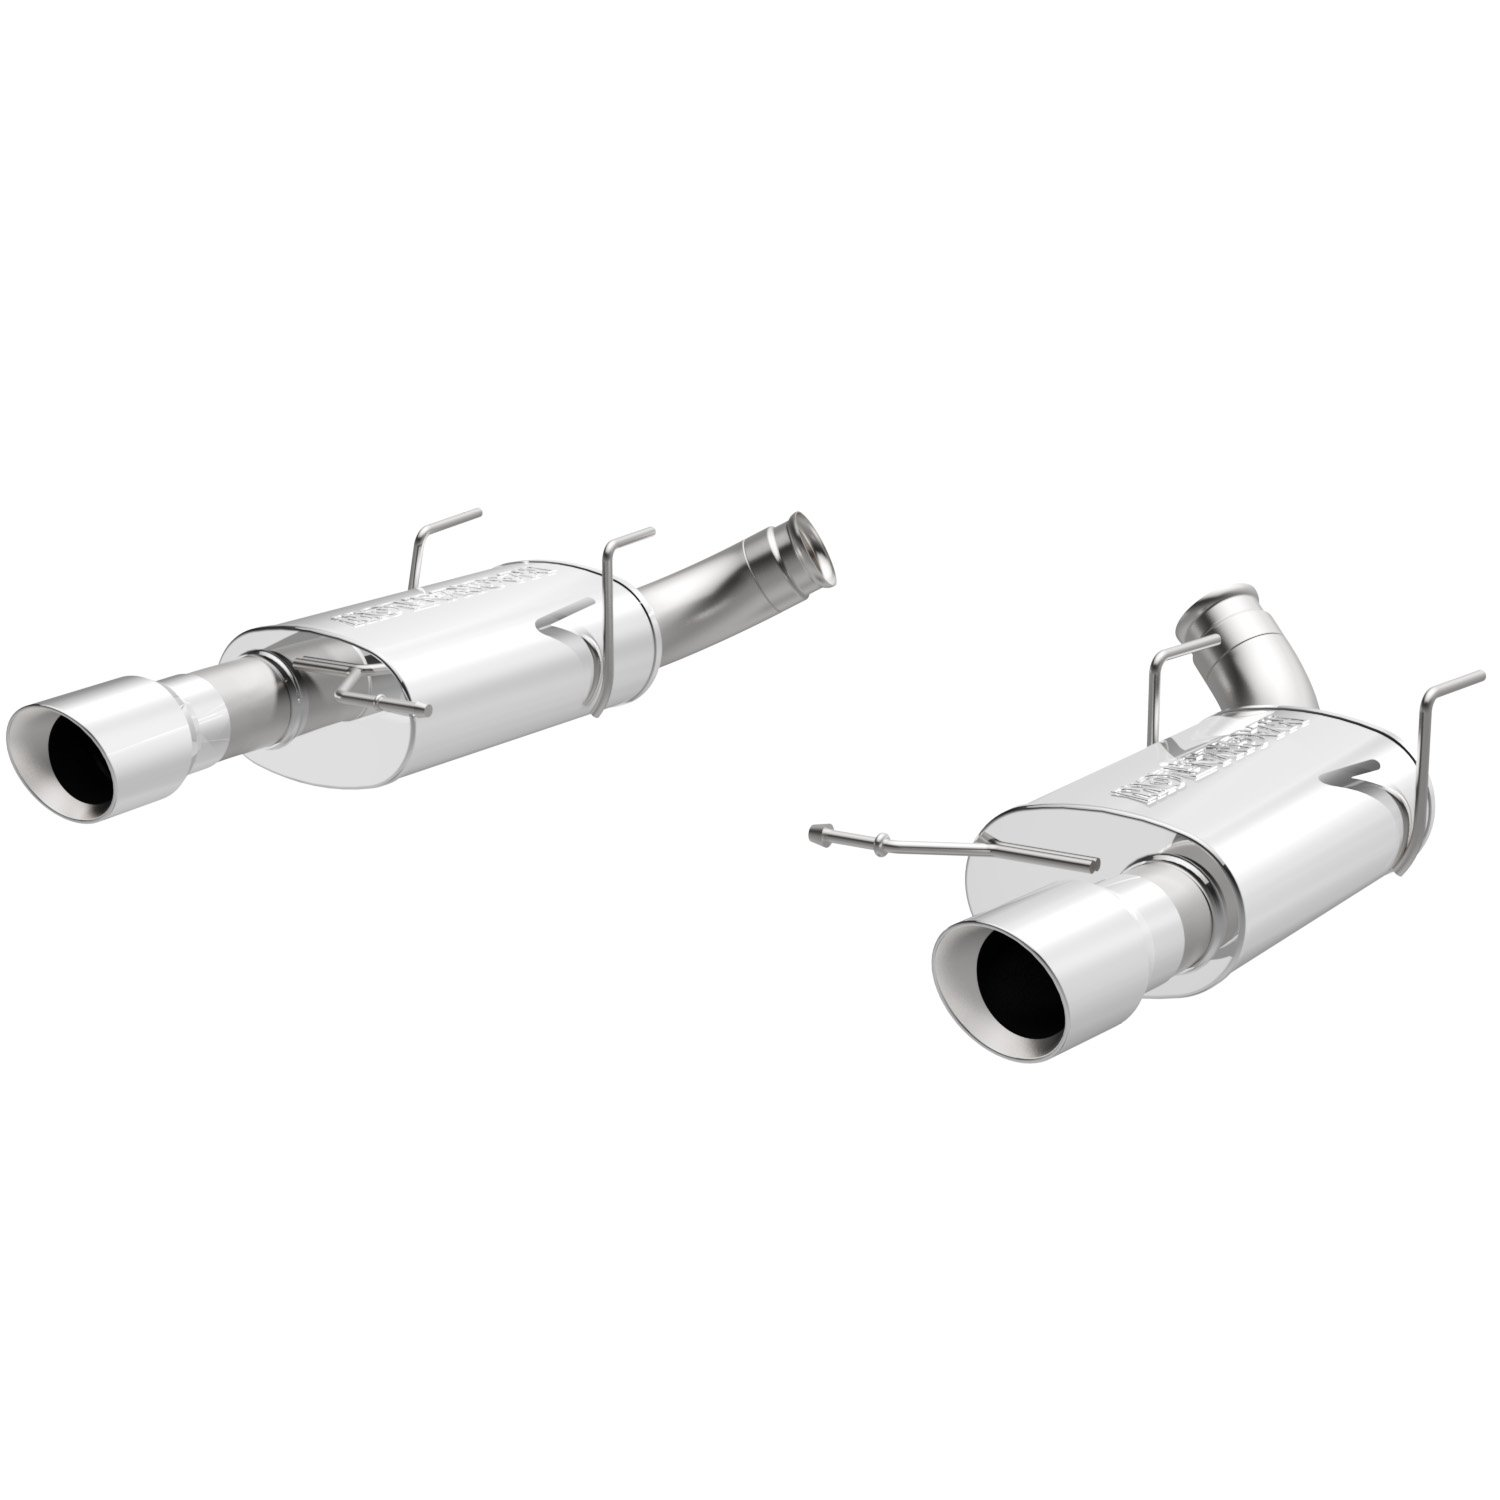 Magnaflow 15593 - Magnaflow Ford/Lincoln/Mercury Car Exhaust Systems